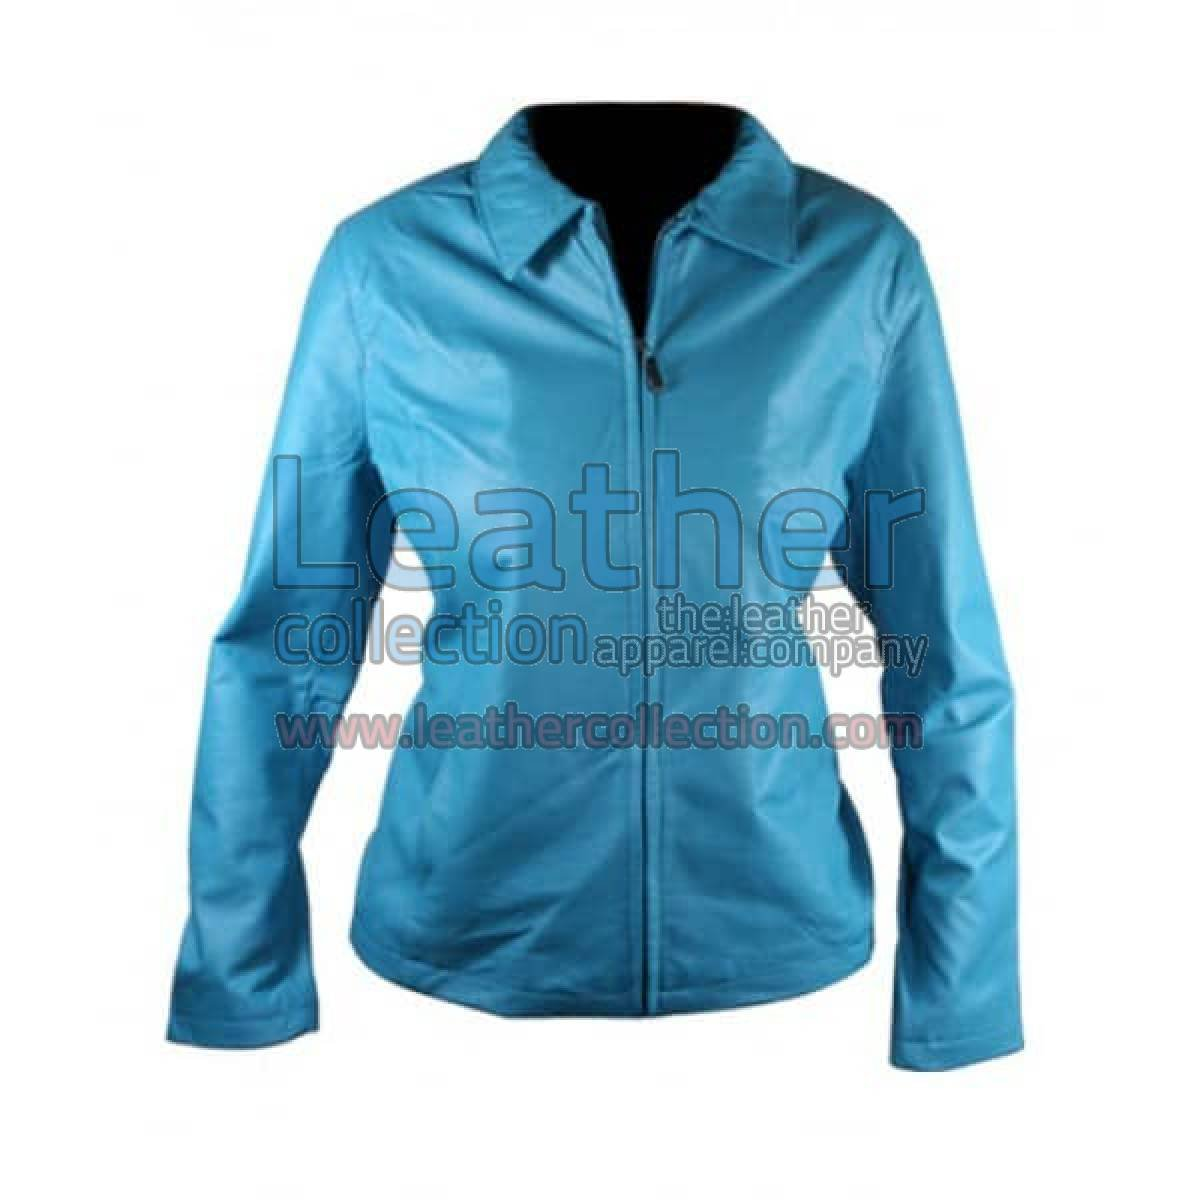 Classic Ladies Blue Leather Jacket